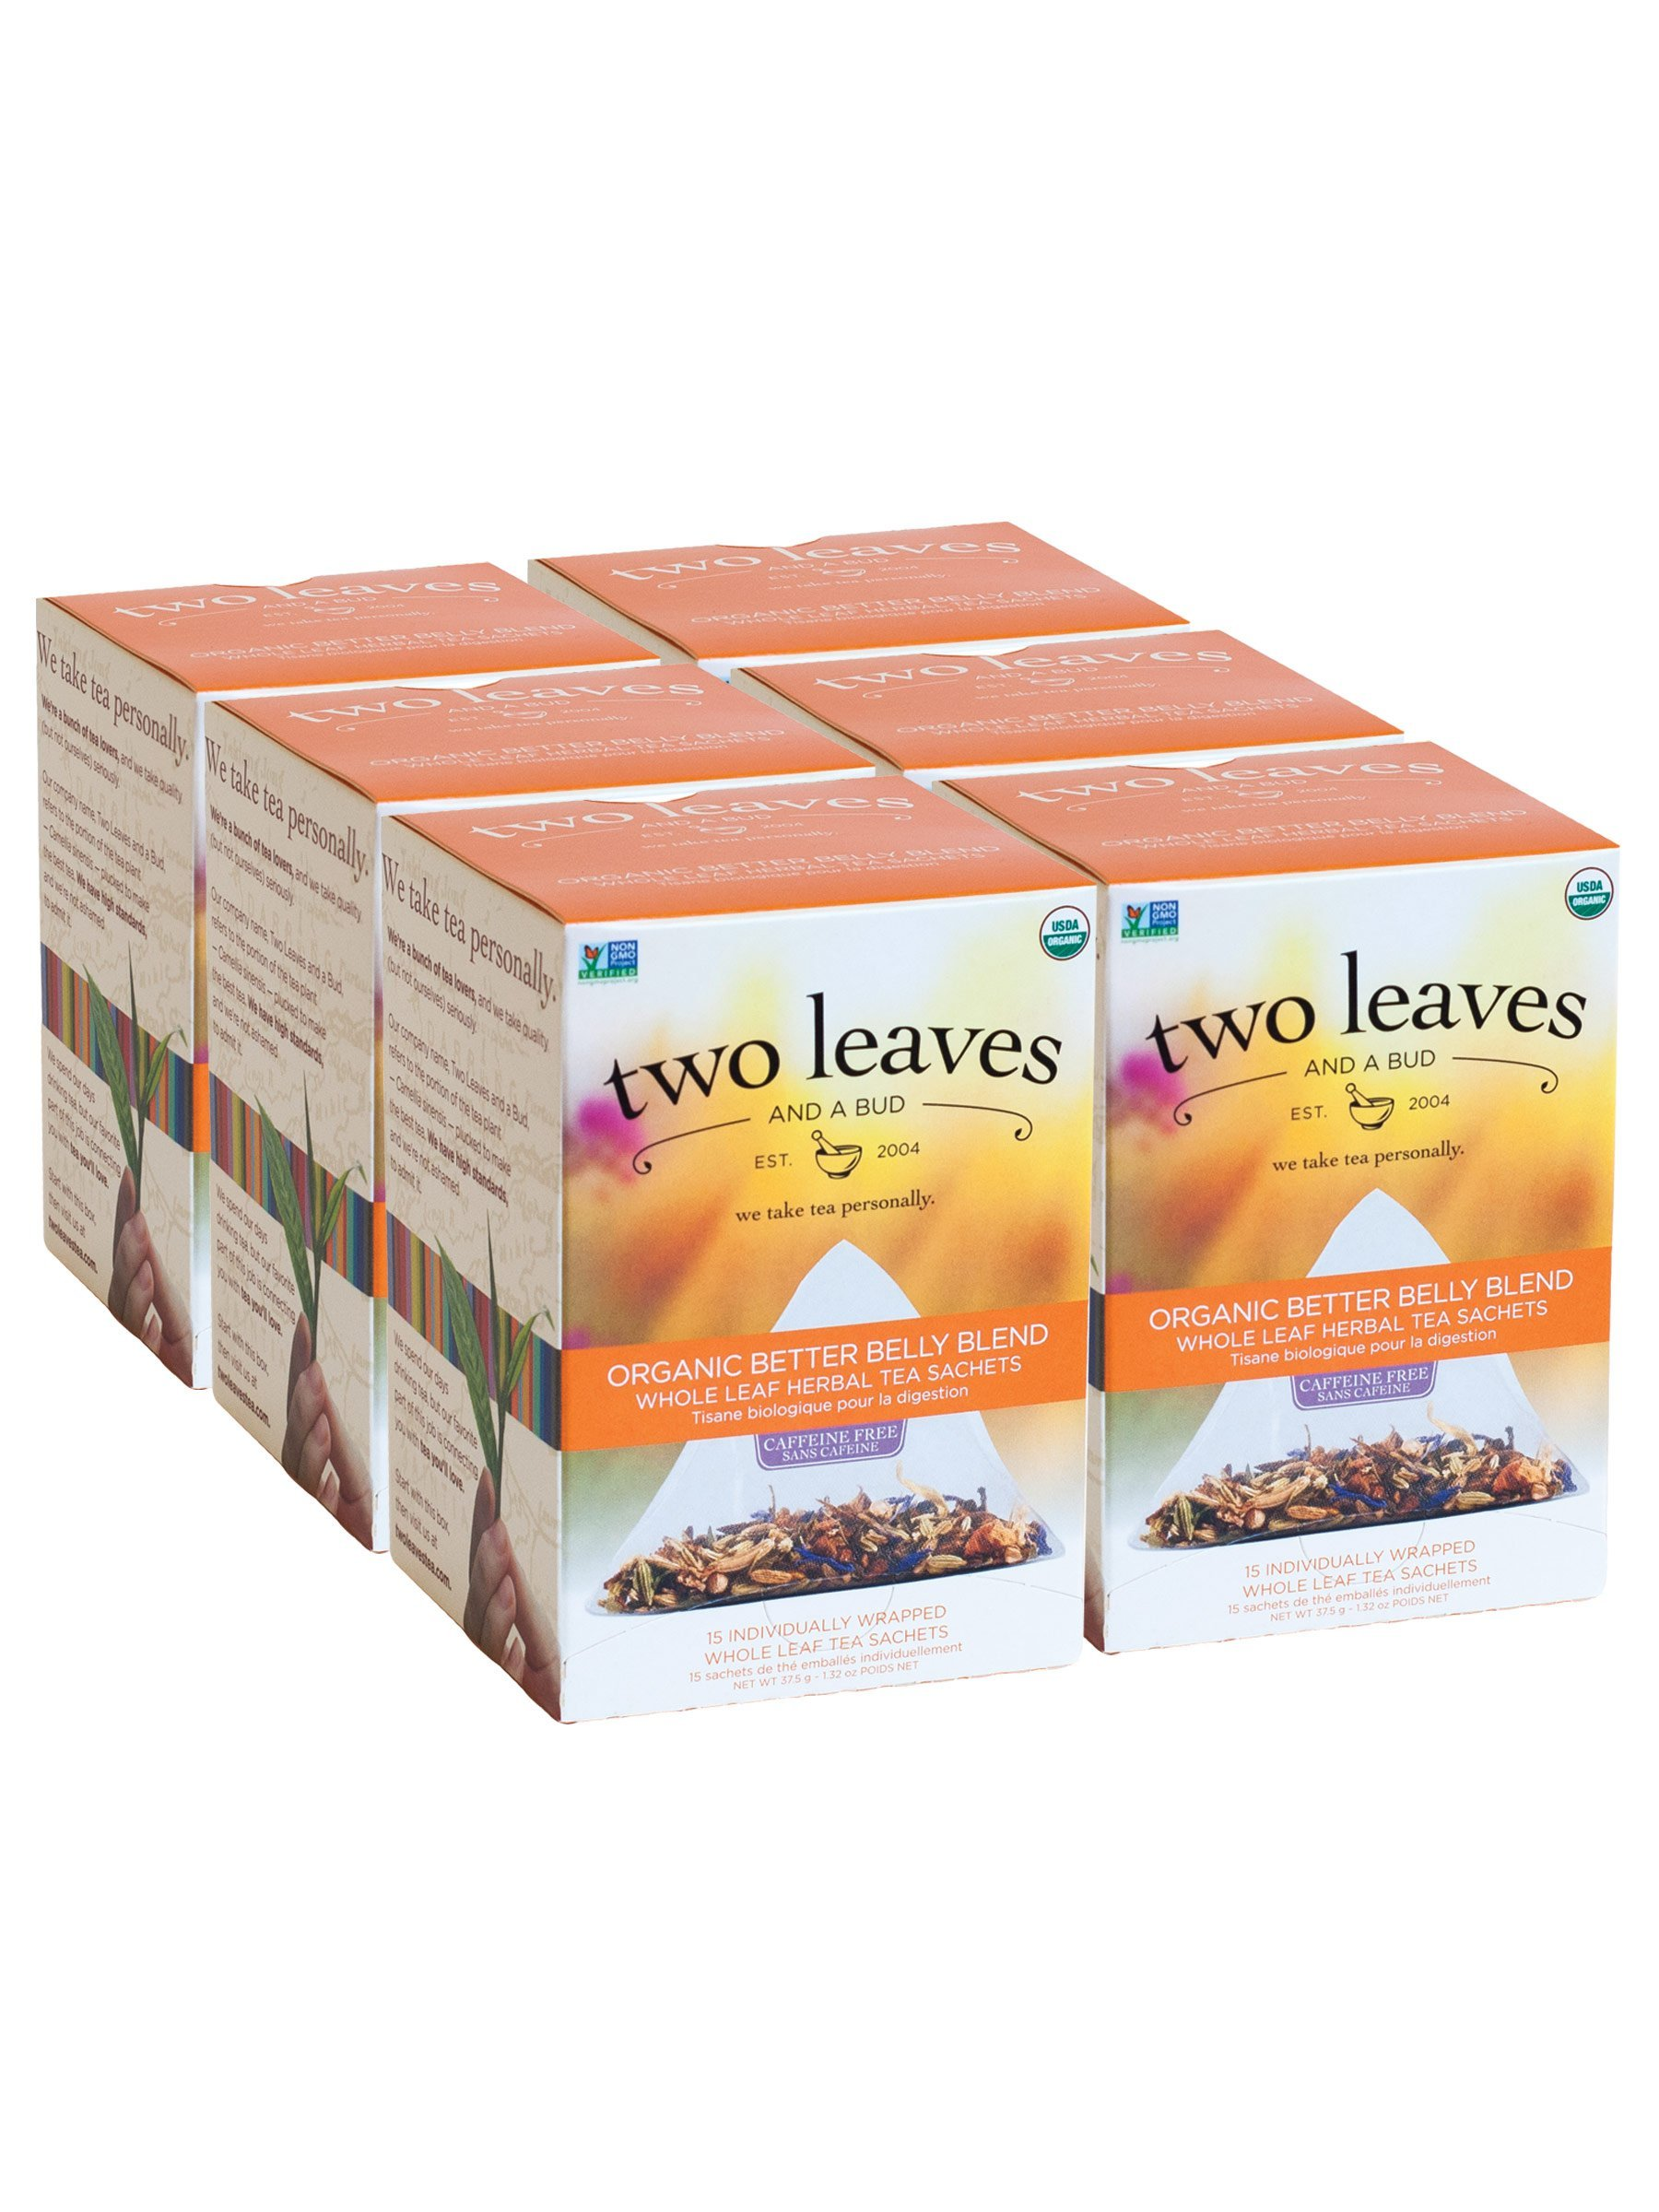 Two Leaves and a Bud Organic Better Belly Blend Herbal Tea Bags, 15 Count (Pack of 6) Organic Whole Leaf Herbal Tea in Pyramid Sachet Bags, Delicious Hot or Iced with Milk or Sugar or Honey or Plain